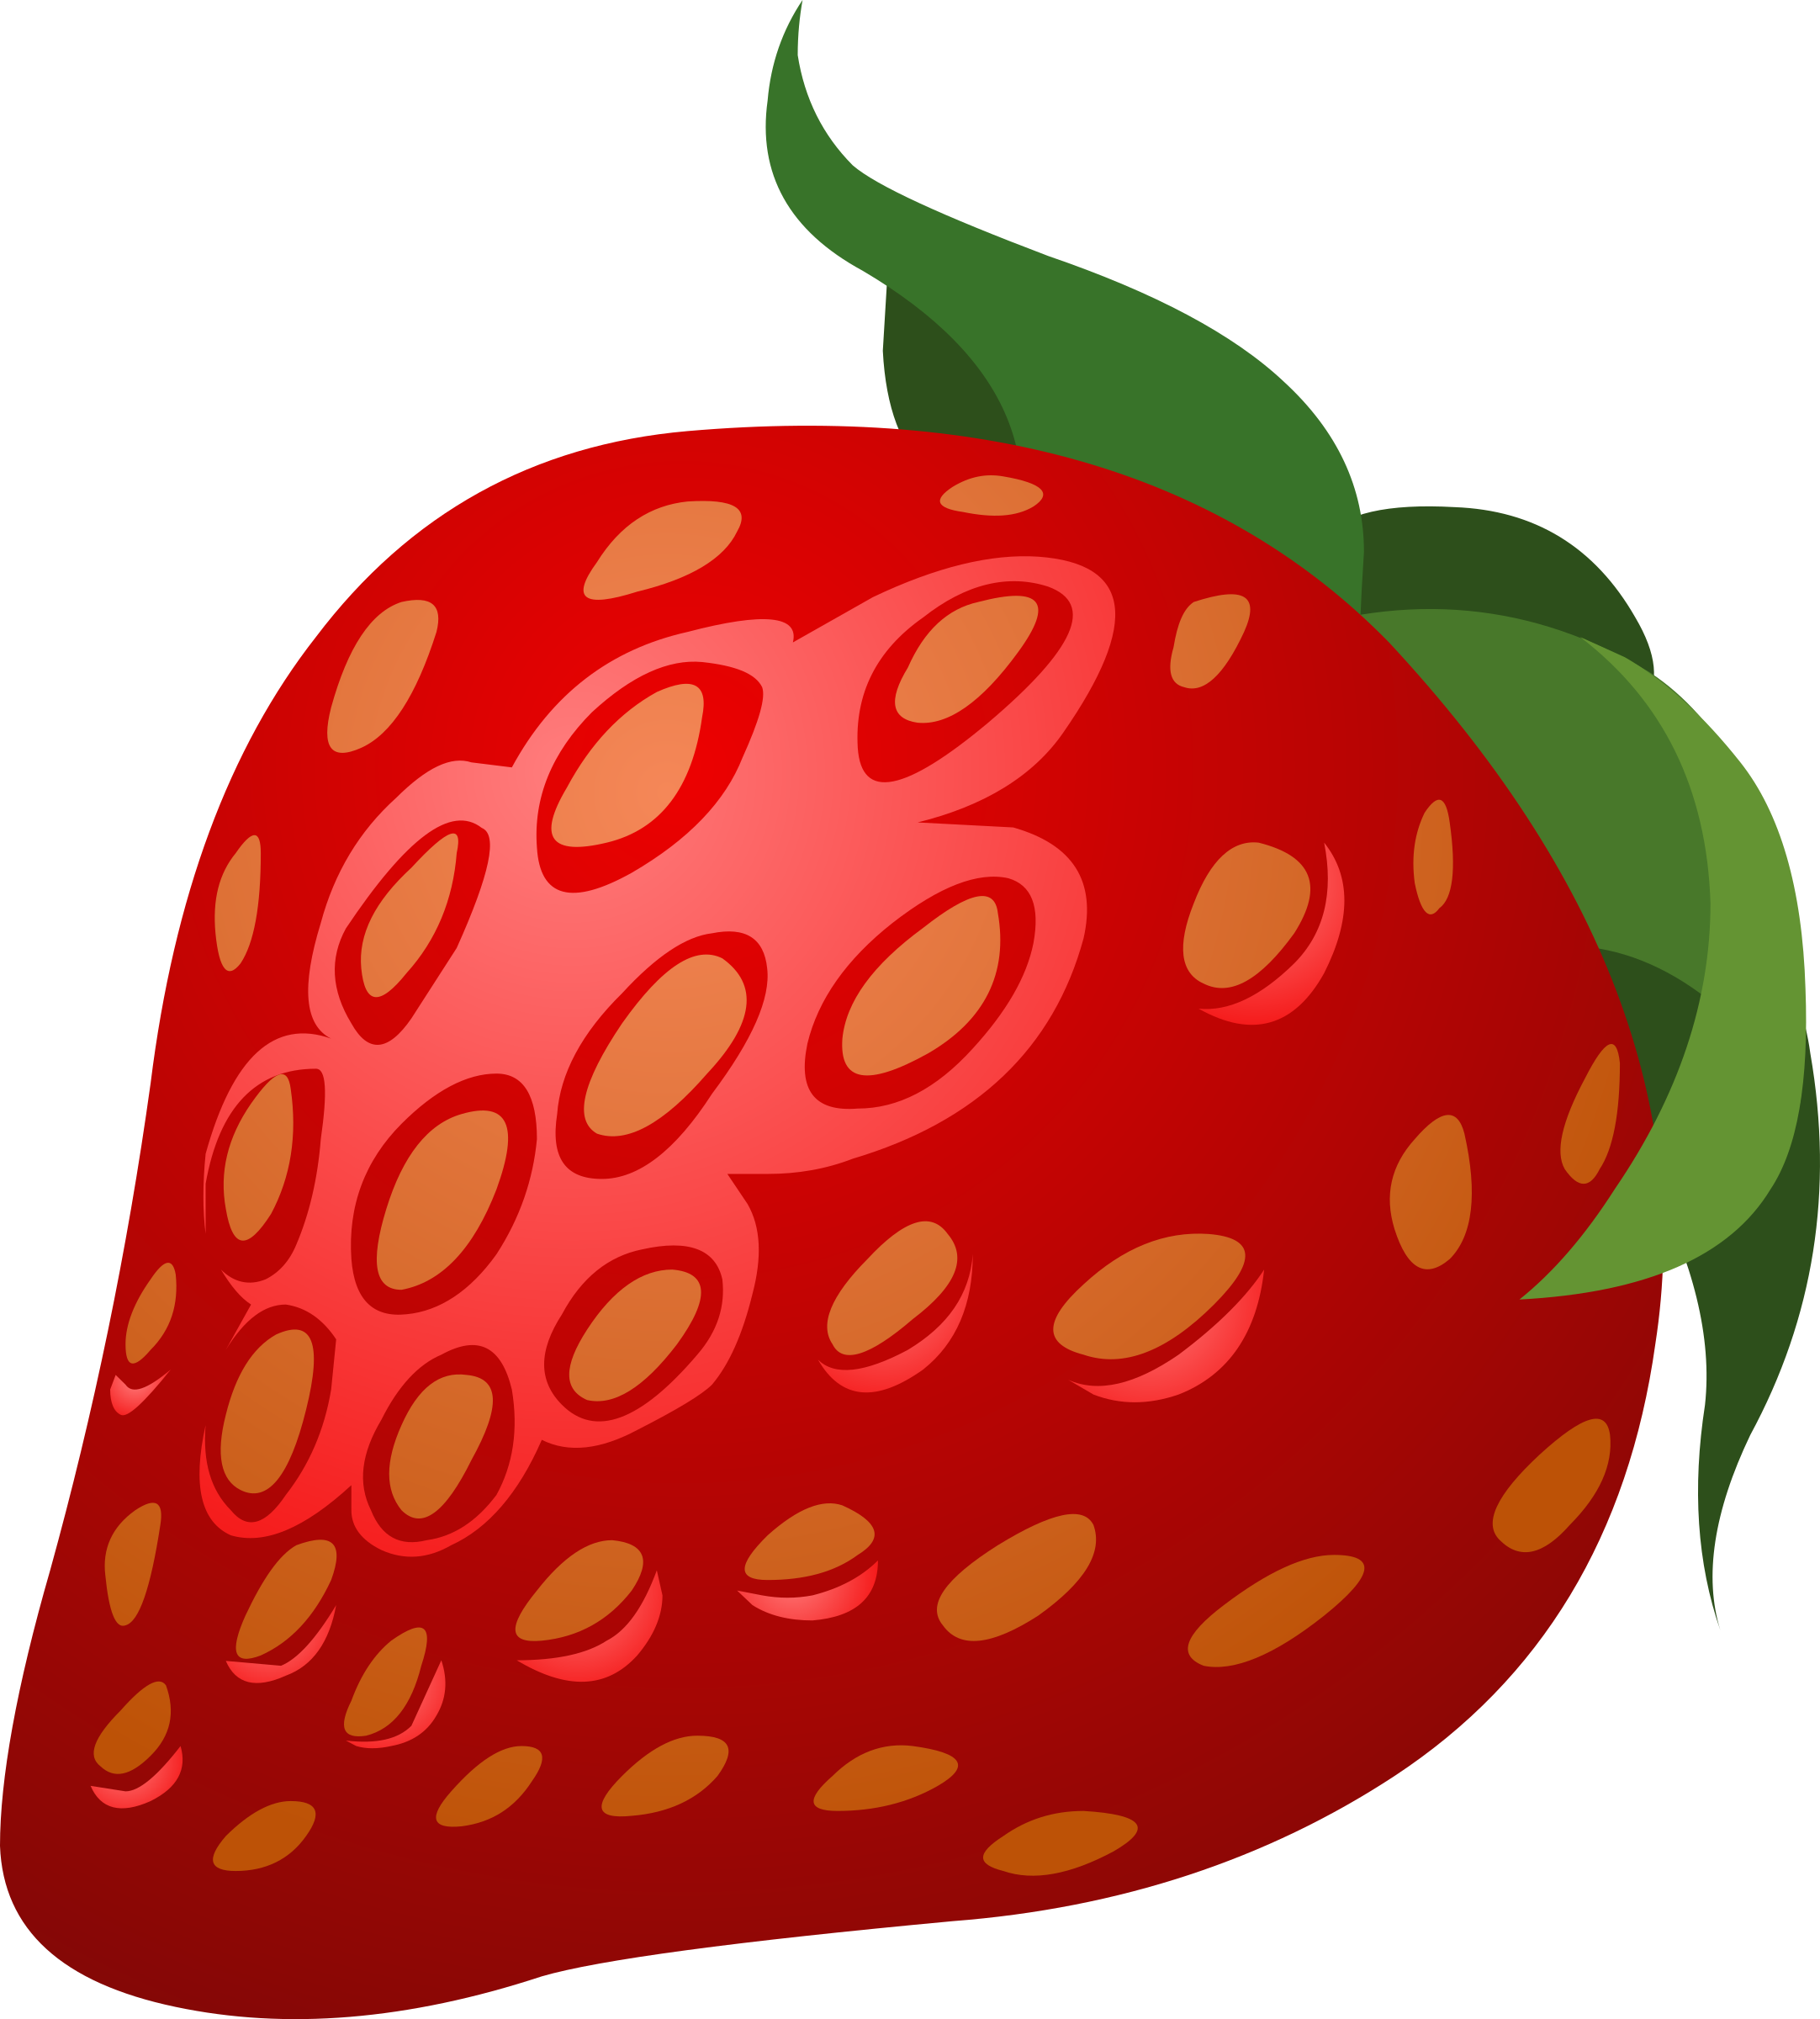 Canned cat food clipart png transparent library Food Strawberry by @glitch, This glitch clipart is about food ... png transparent library